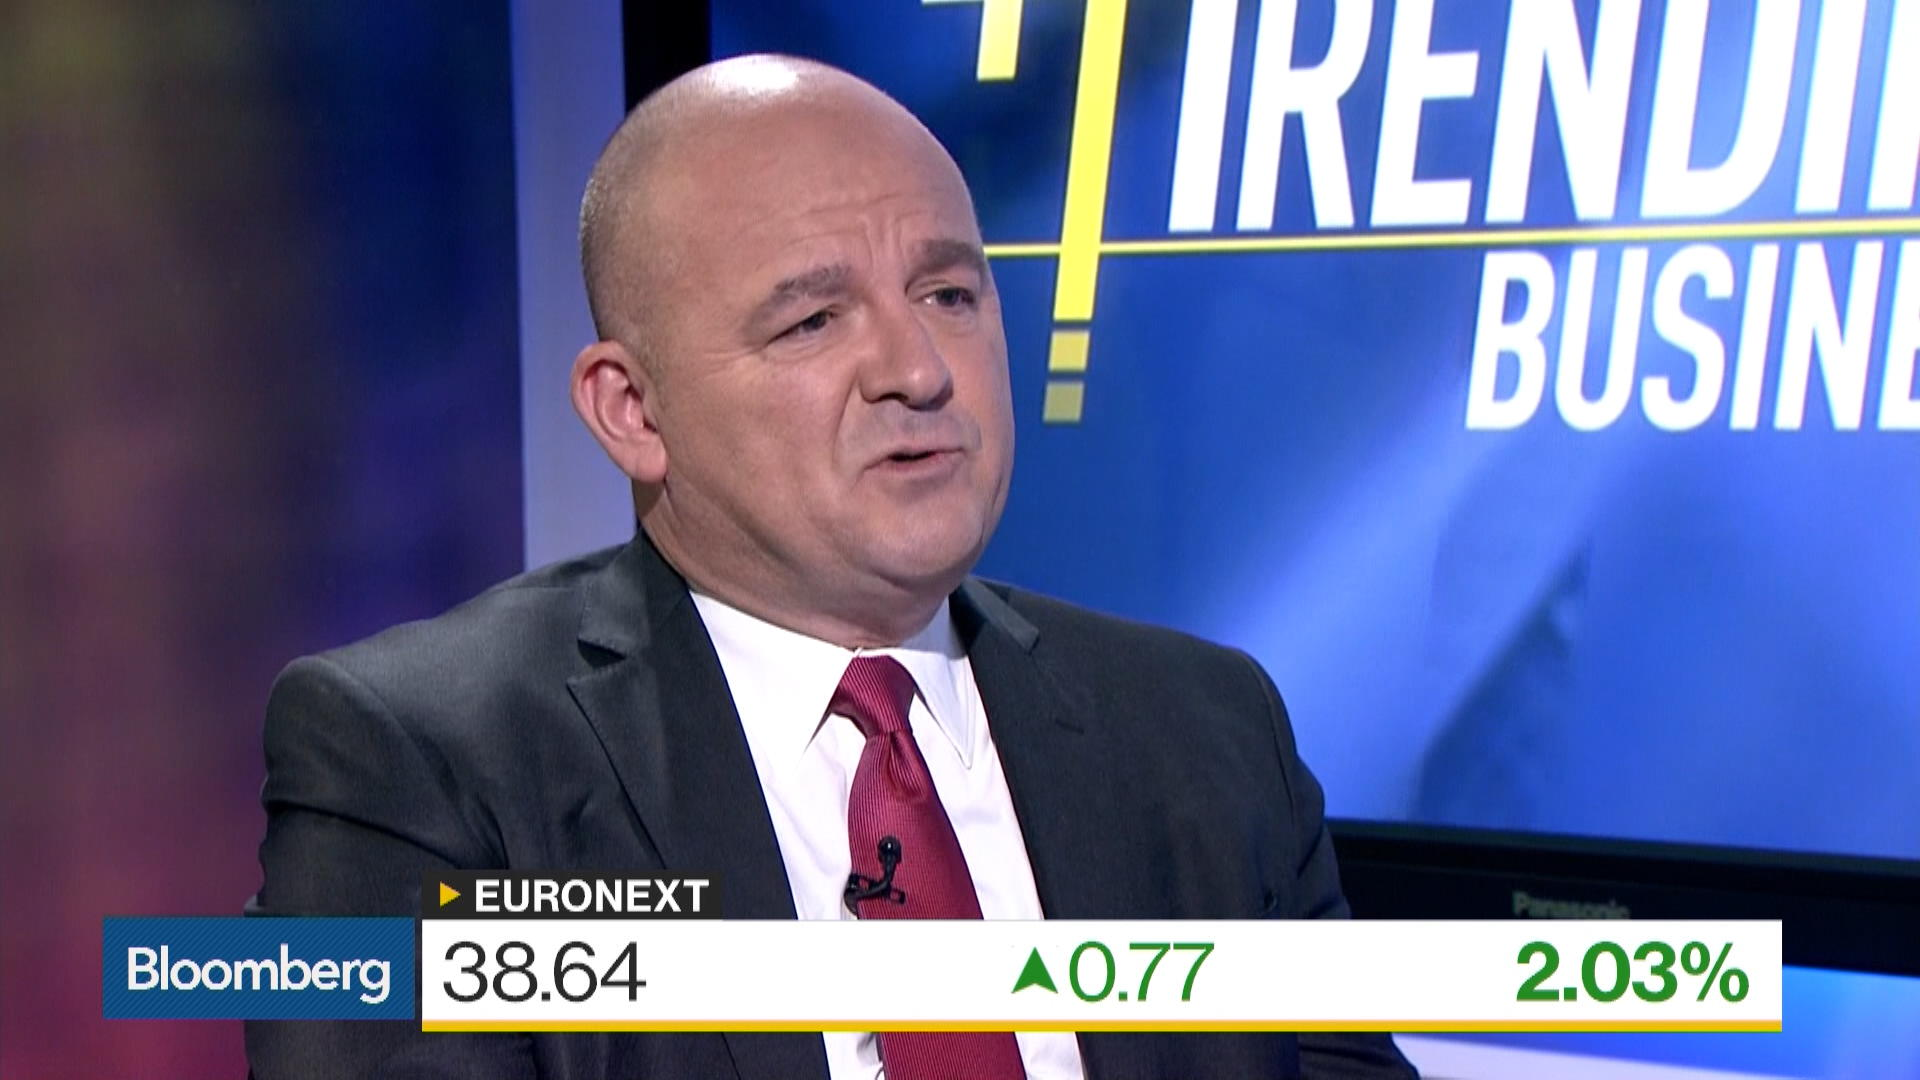 Could Brexit Be an Advantage to European Markets?